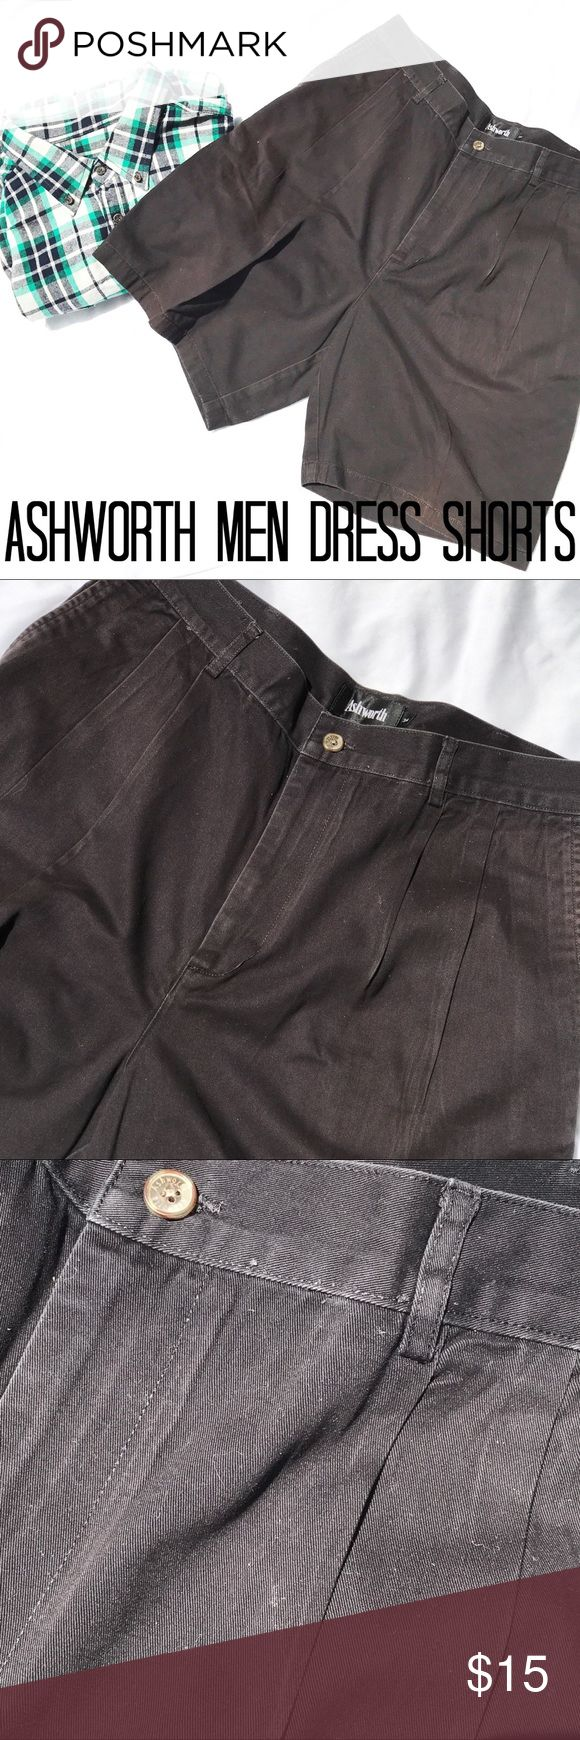 Ashworth Men Dress Shorts The pictures don't do it justice these shorts still have a dark wash and they look nice, condition is good Ashworth Shorts